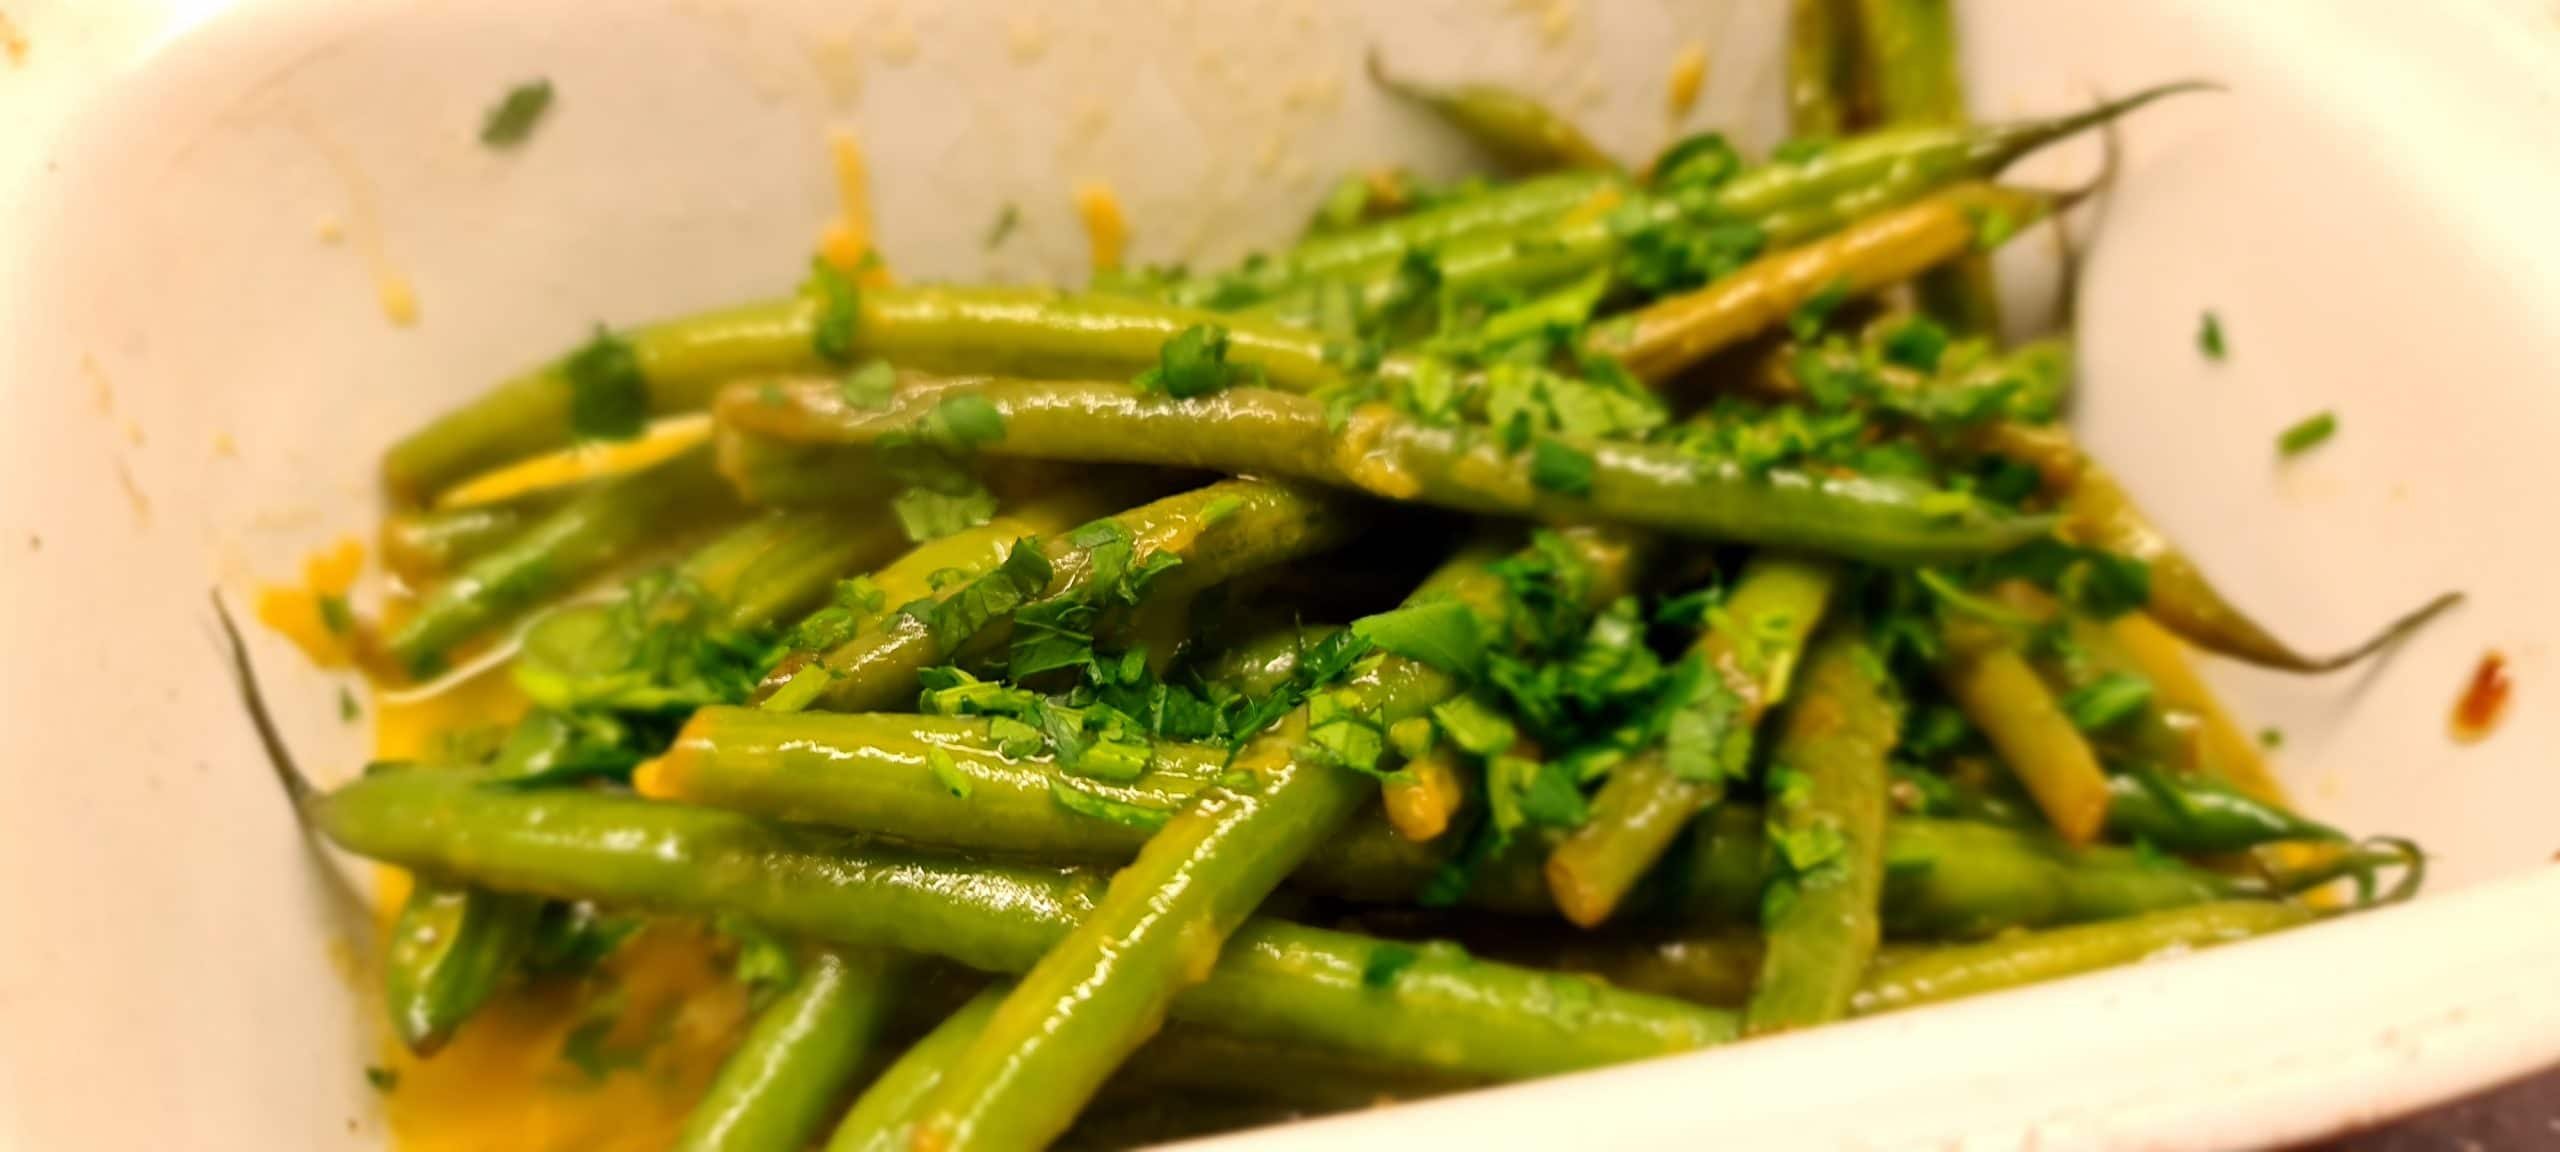 Lemon and Parsley Green Beans